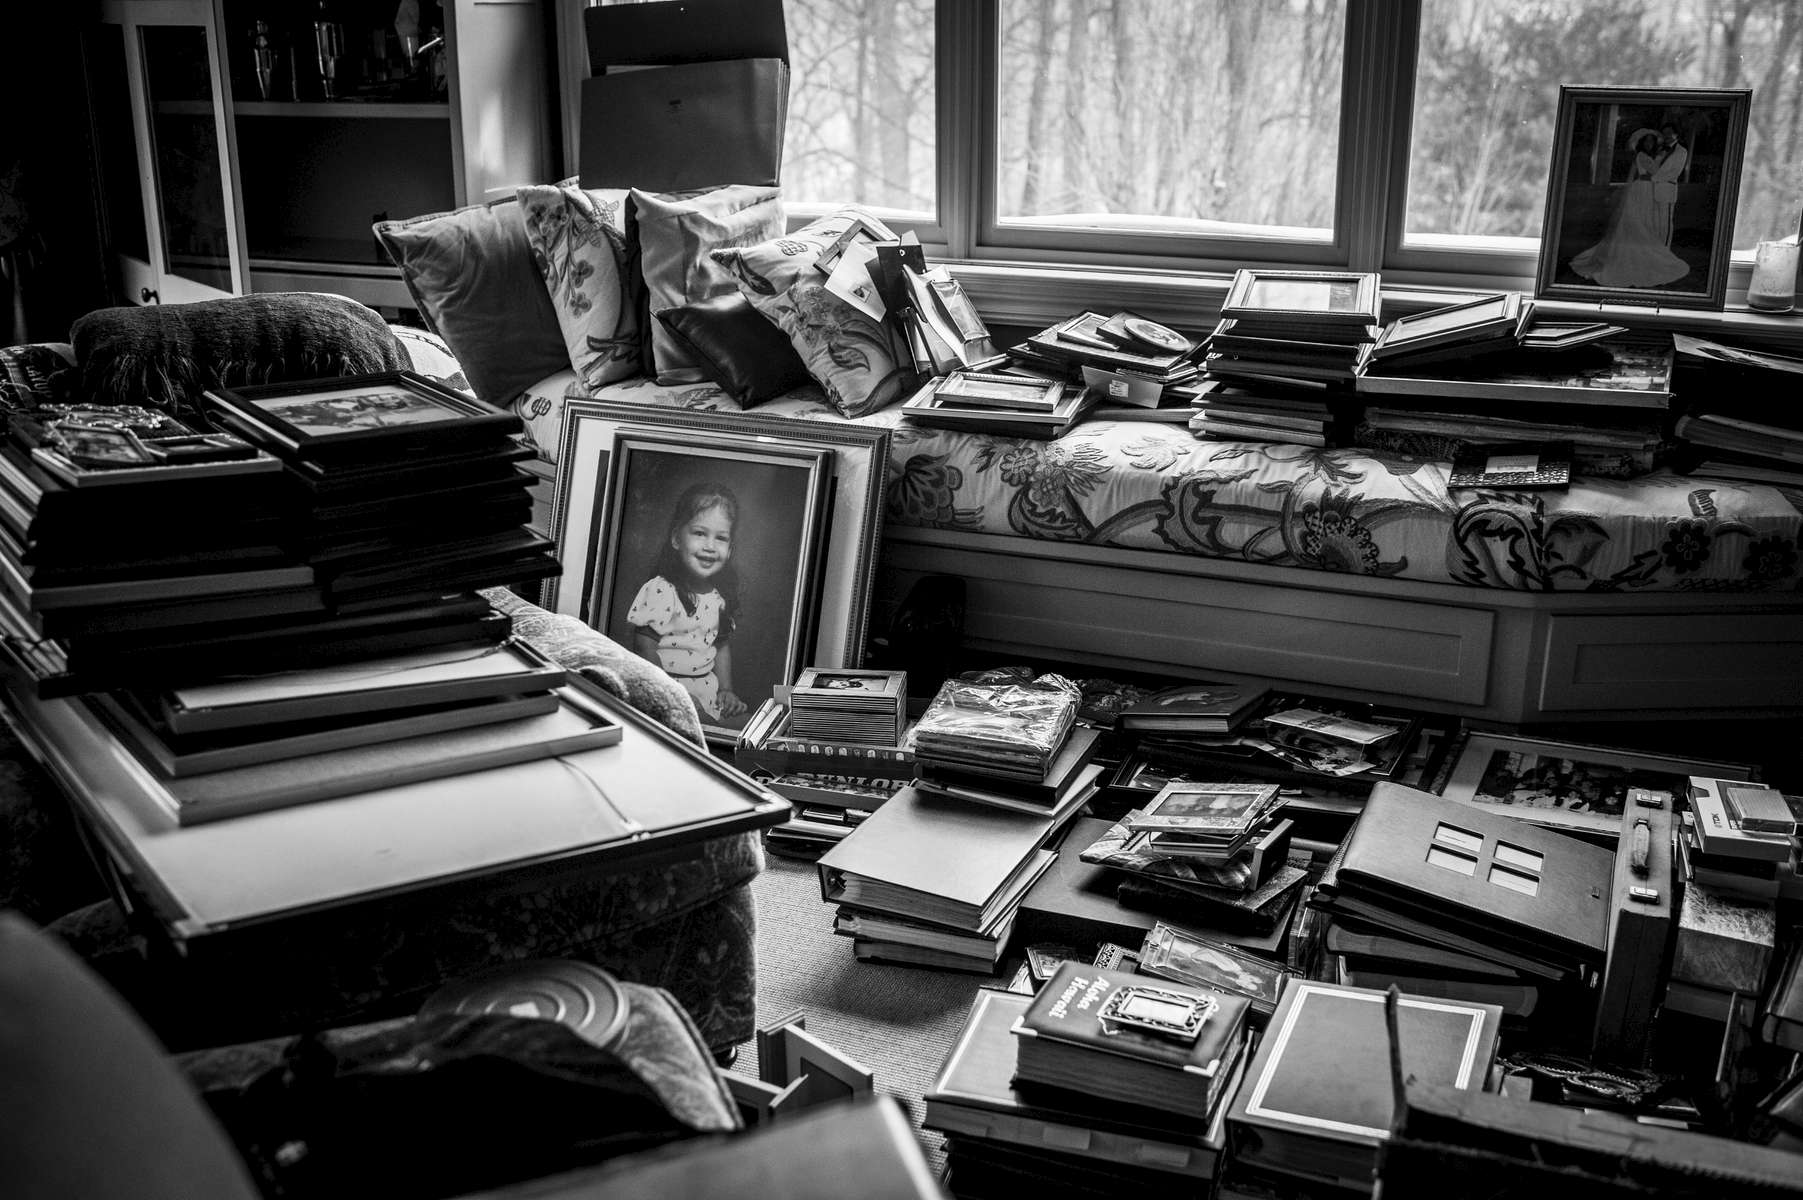 Thousands of photographs were uncovered from every corner of the home, reflecting a lifetime of memories that we will hold on to forever.